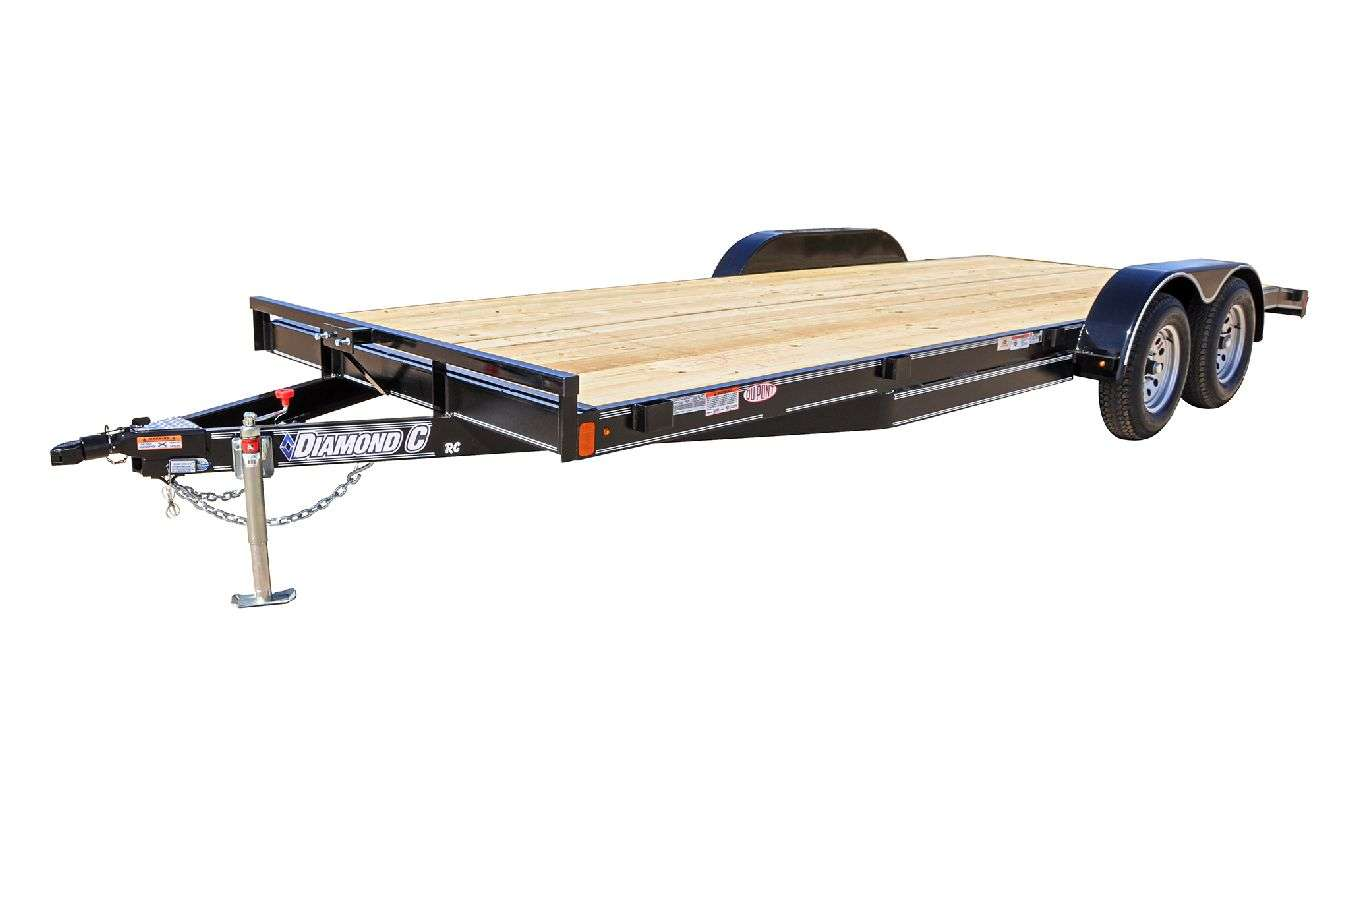 Diamond C Car Hauler Trailers